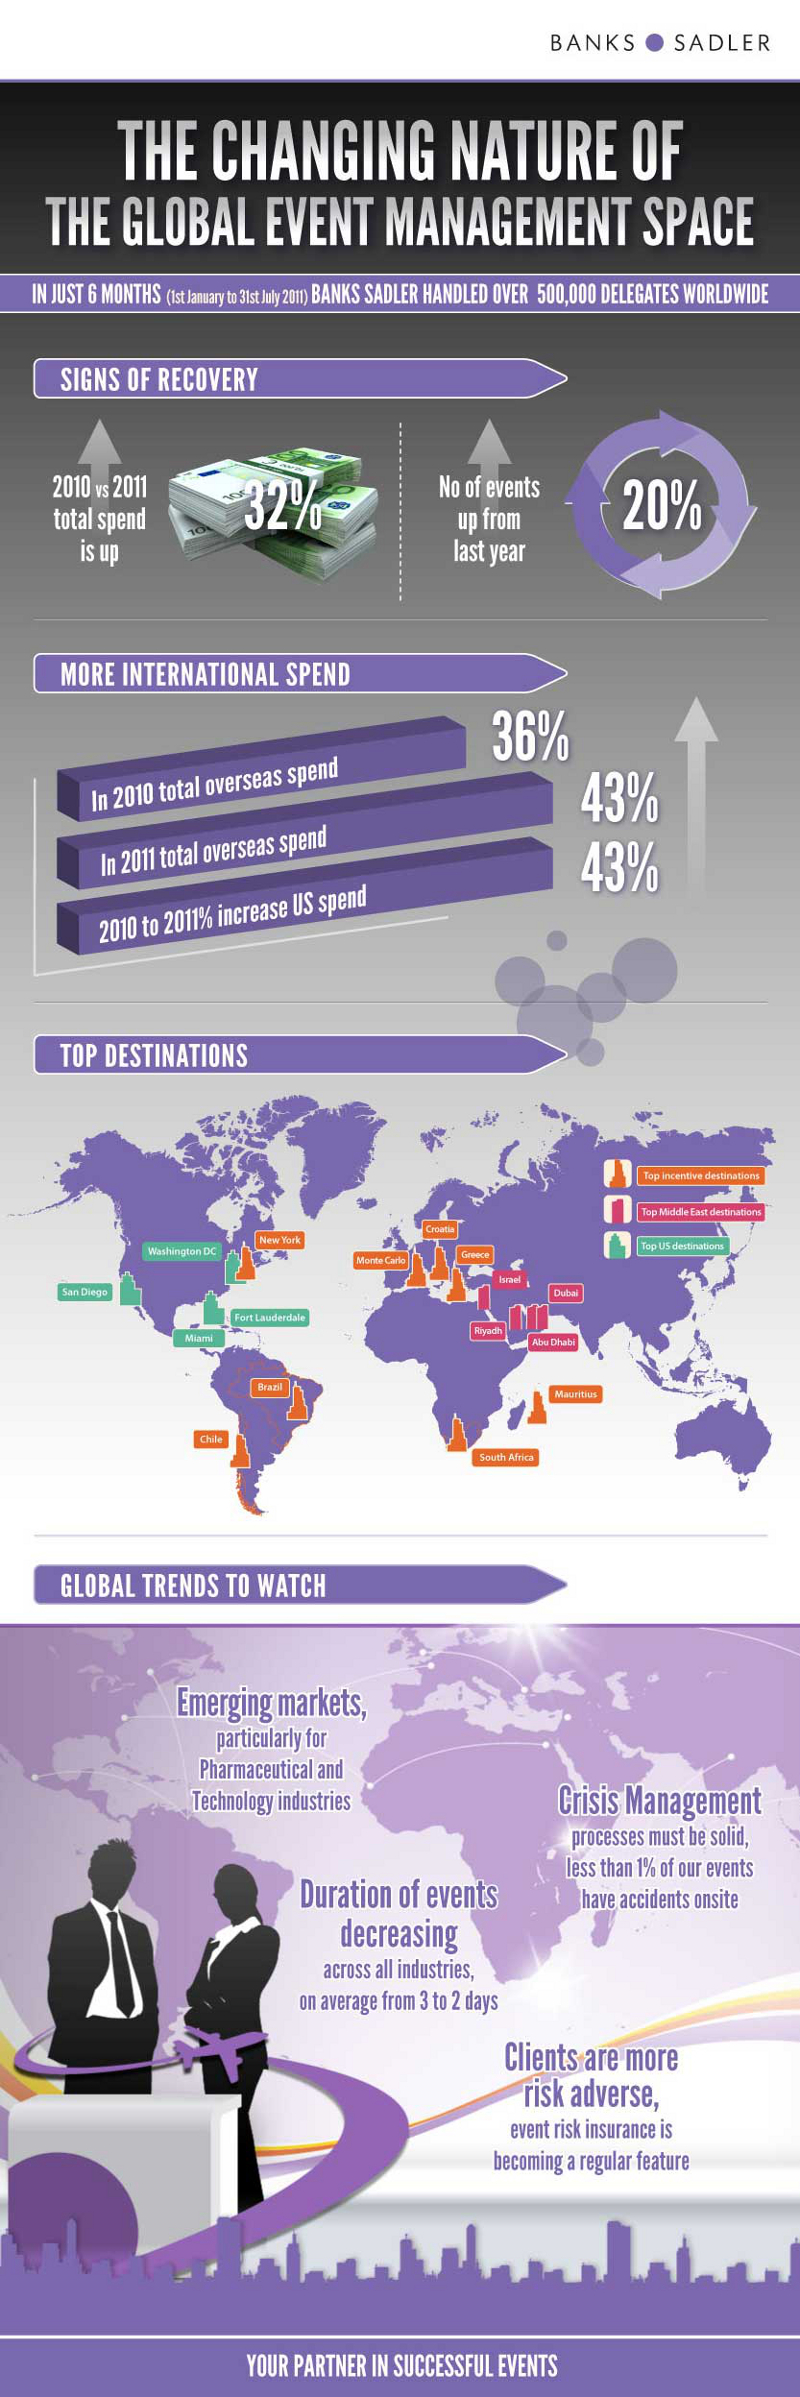 Global Event Management Trends